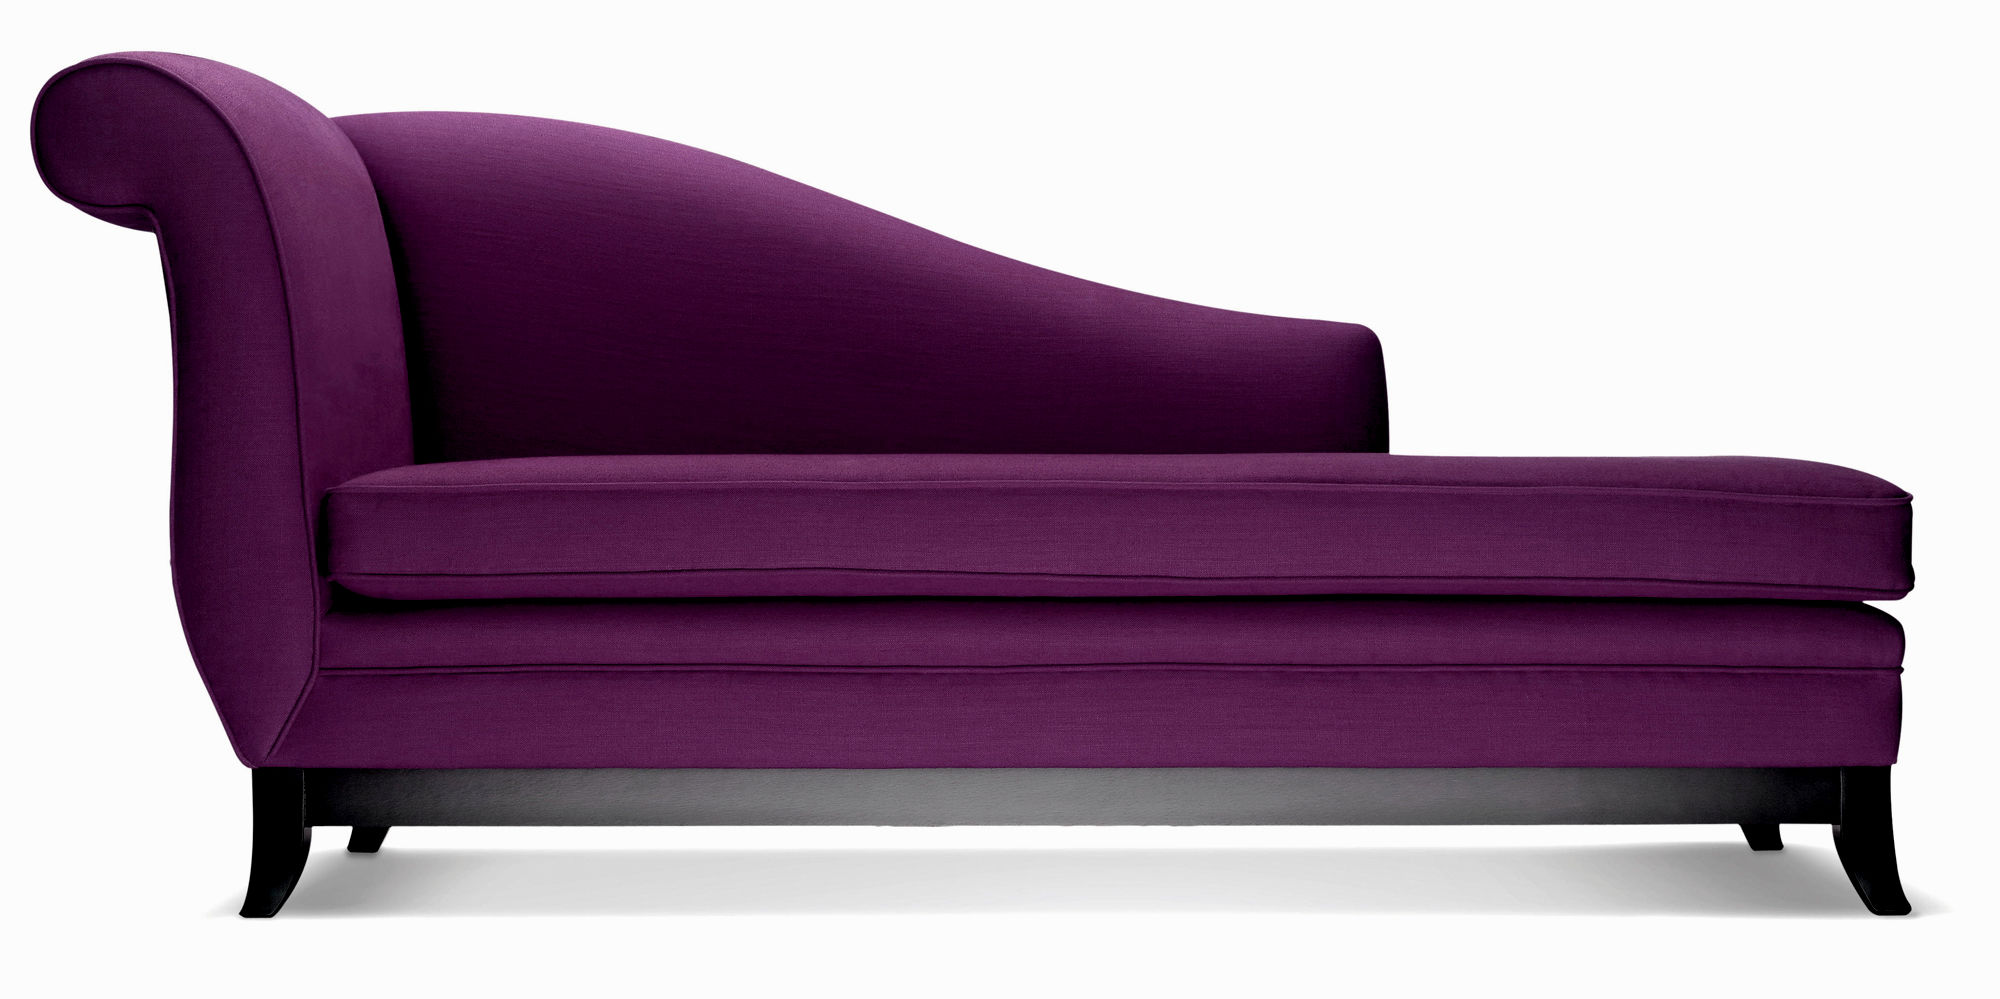 fresh ikea sofa bed with chaise design-Sensational Ikea sofa Bed with Chaise Image